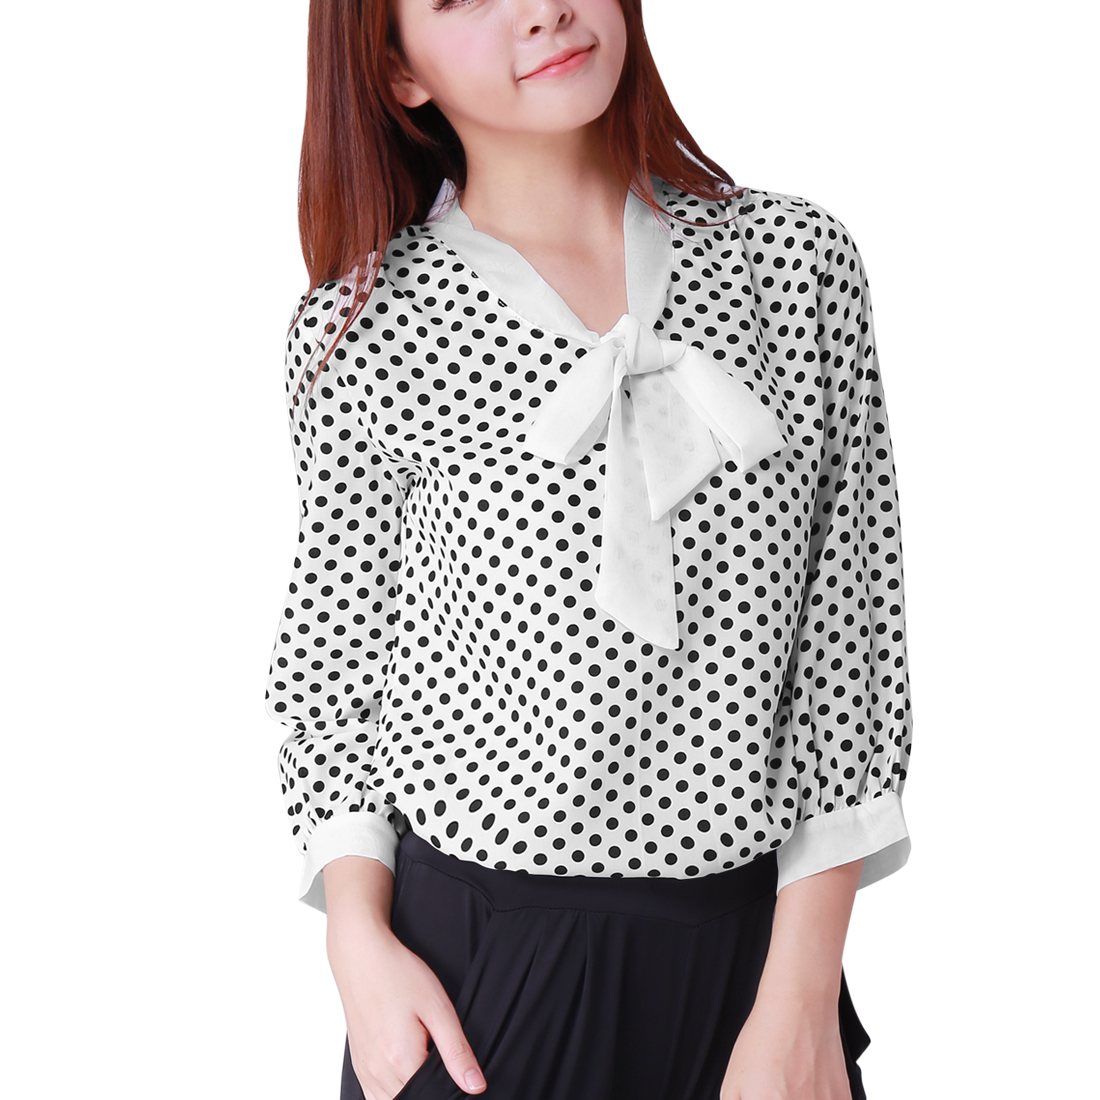 Allegra K Woman NEW Fashion Polka Dots Pattern Loose White Leisure Blouse L